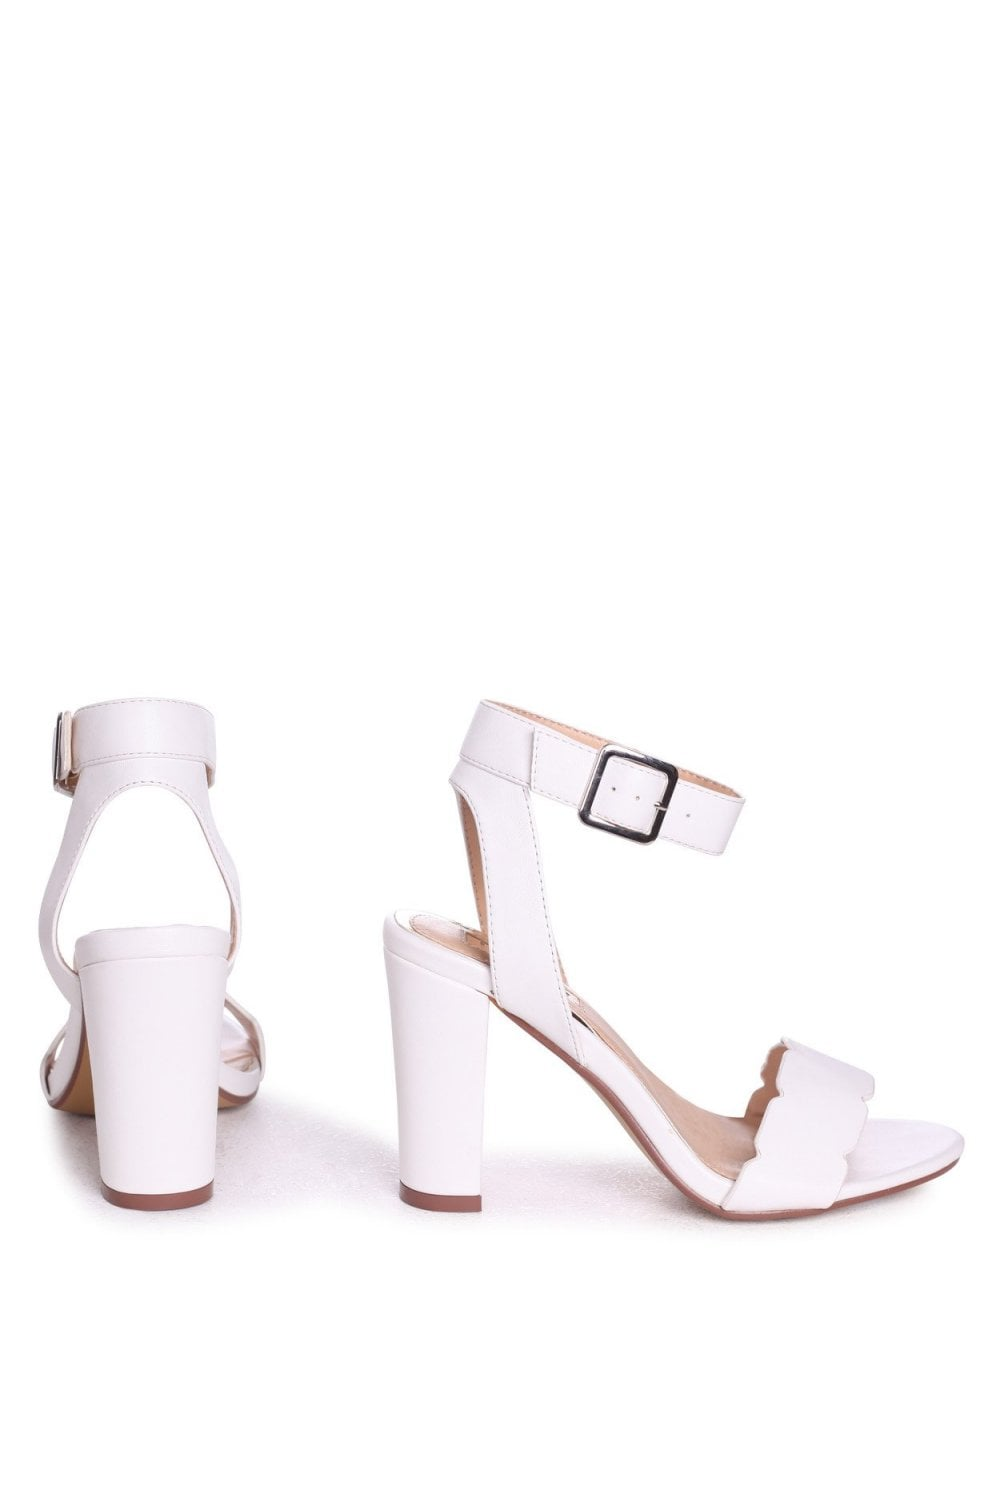 280a70c0f91d Linzi Darla White Nappa Open Toe Block Heels With Ankle Strap Wavey Front  Strap Detail ...